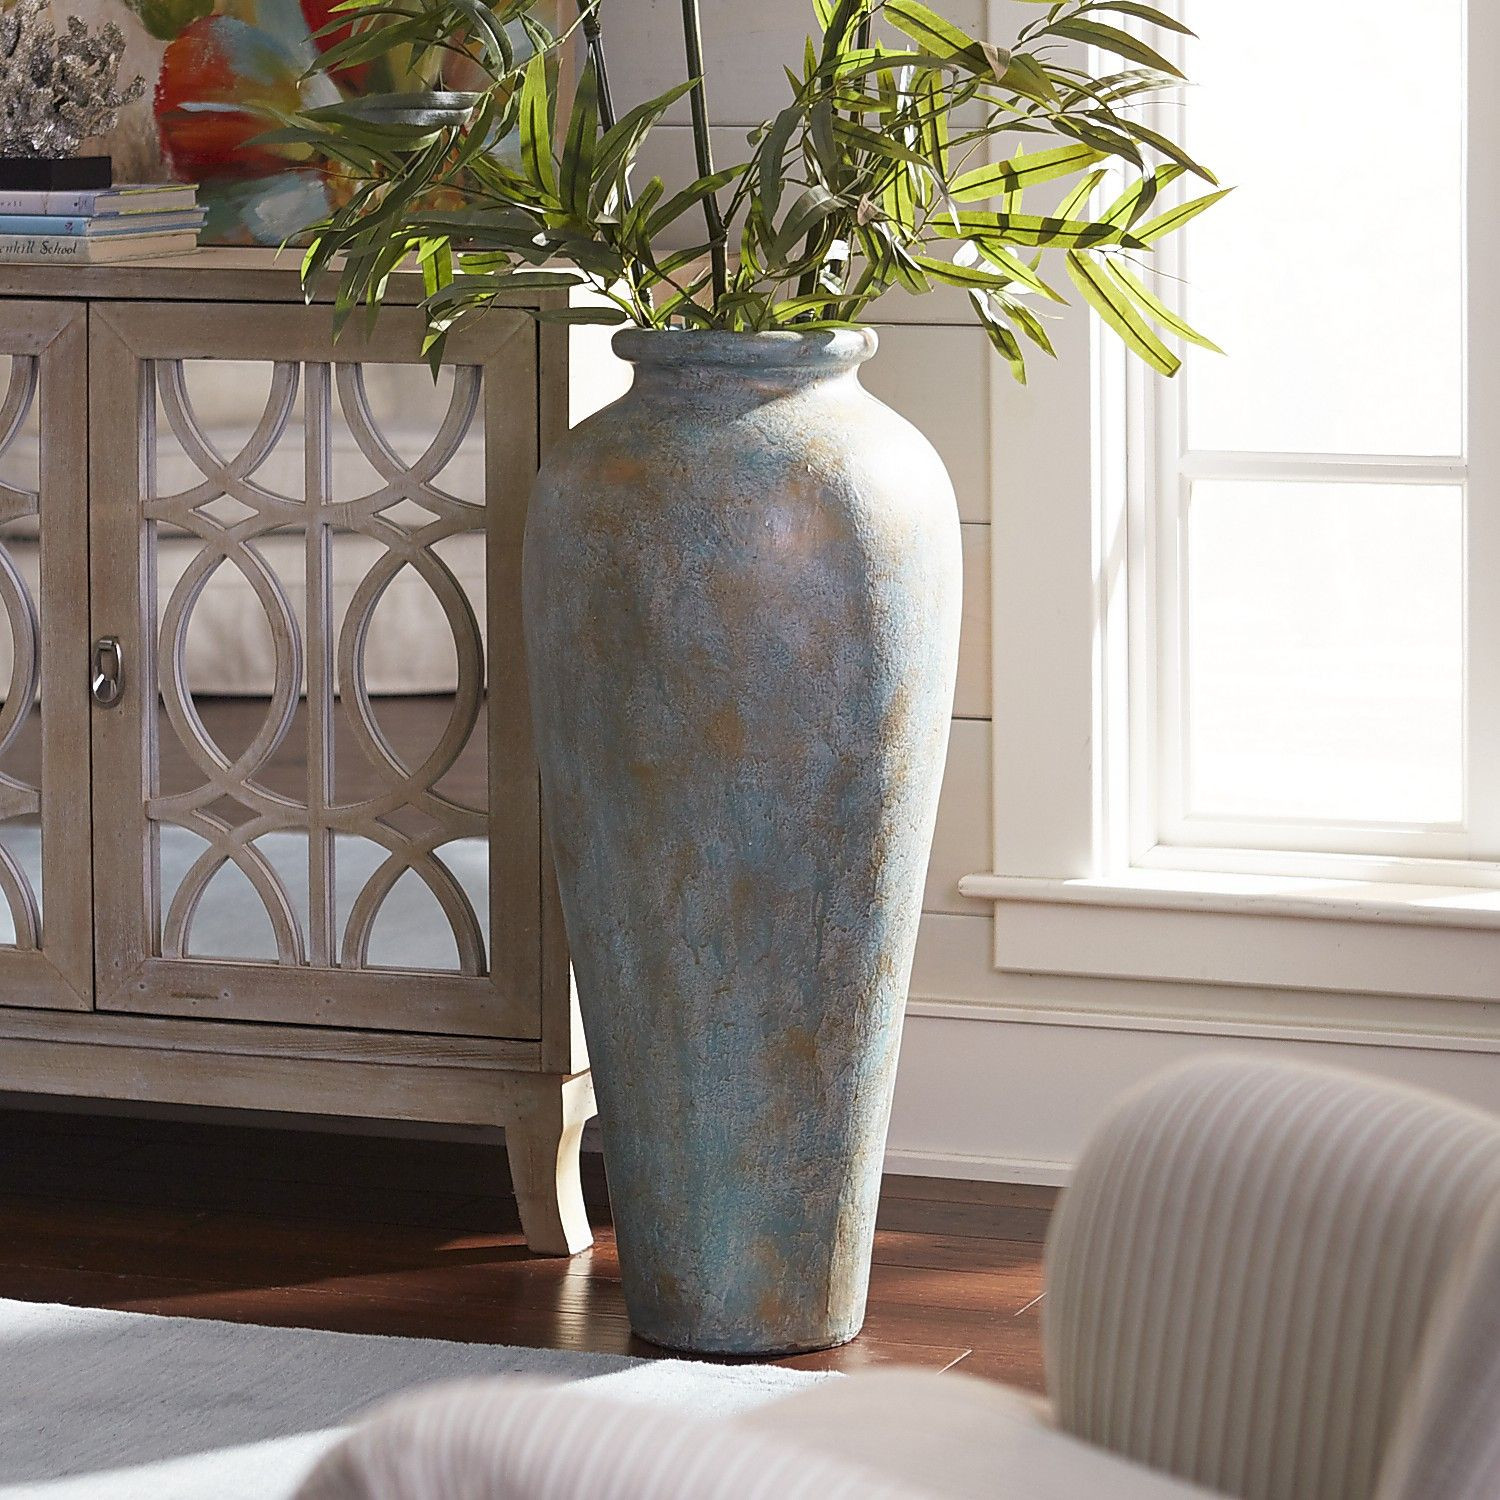 large floor vases cheap of blue green patina urn floor vase products pinterest flooring intended for blue green patina urn floor vase